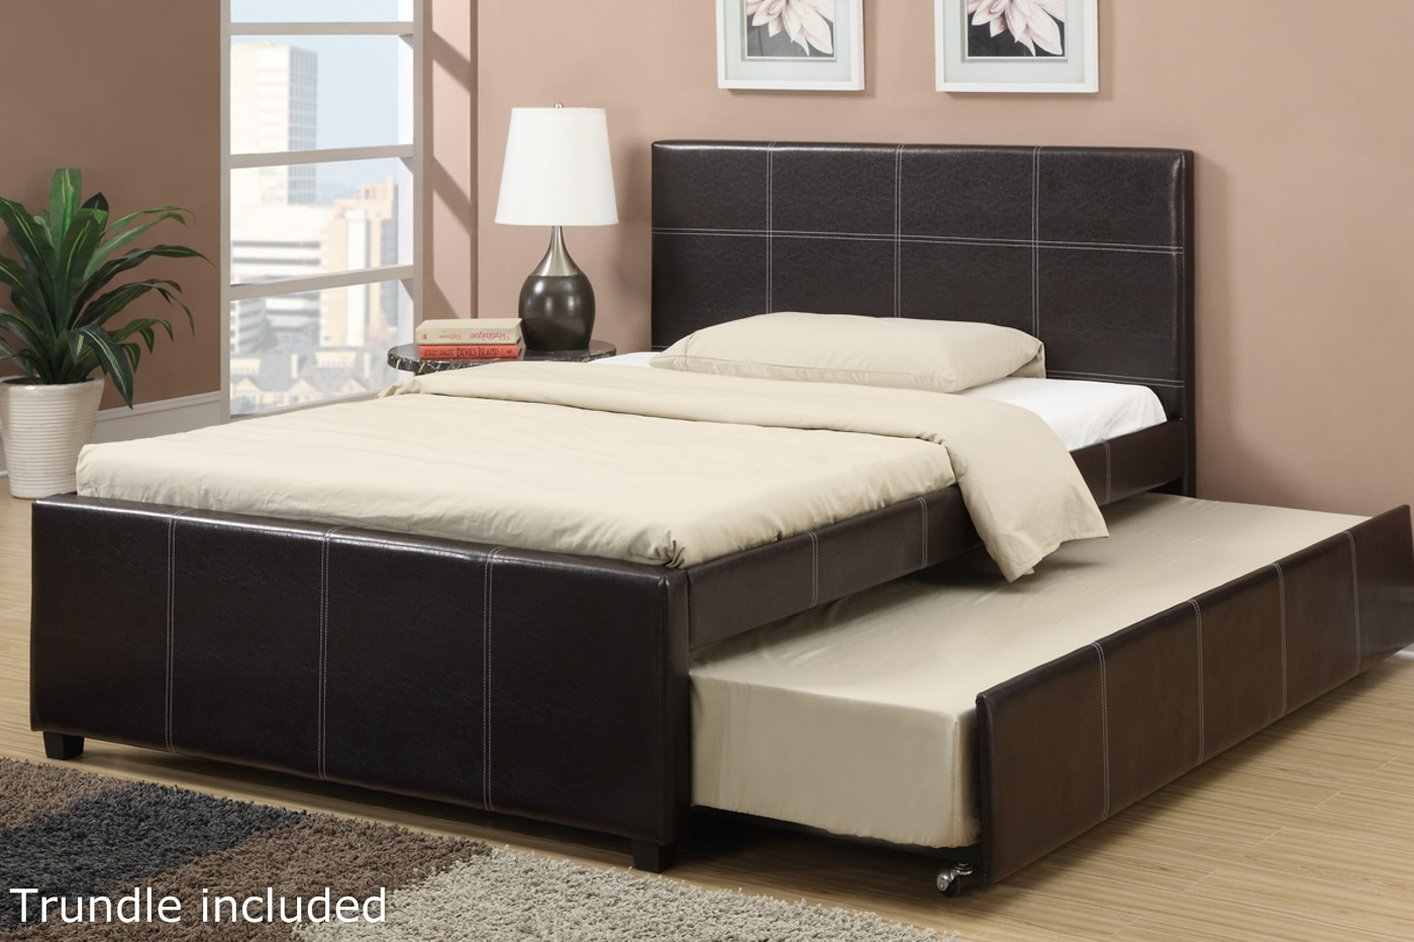 Black Leather Full Size Bed Steal A Sofa Furniture